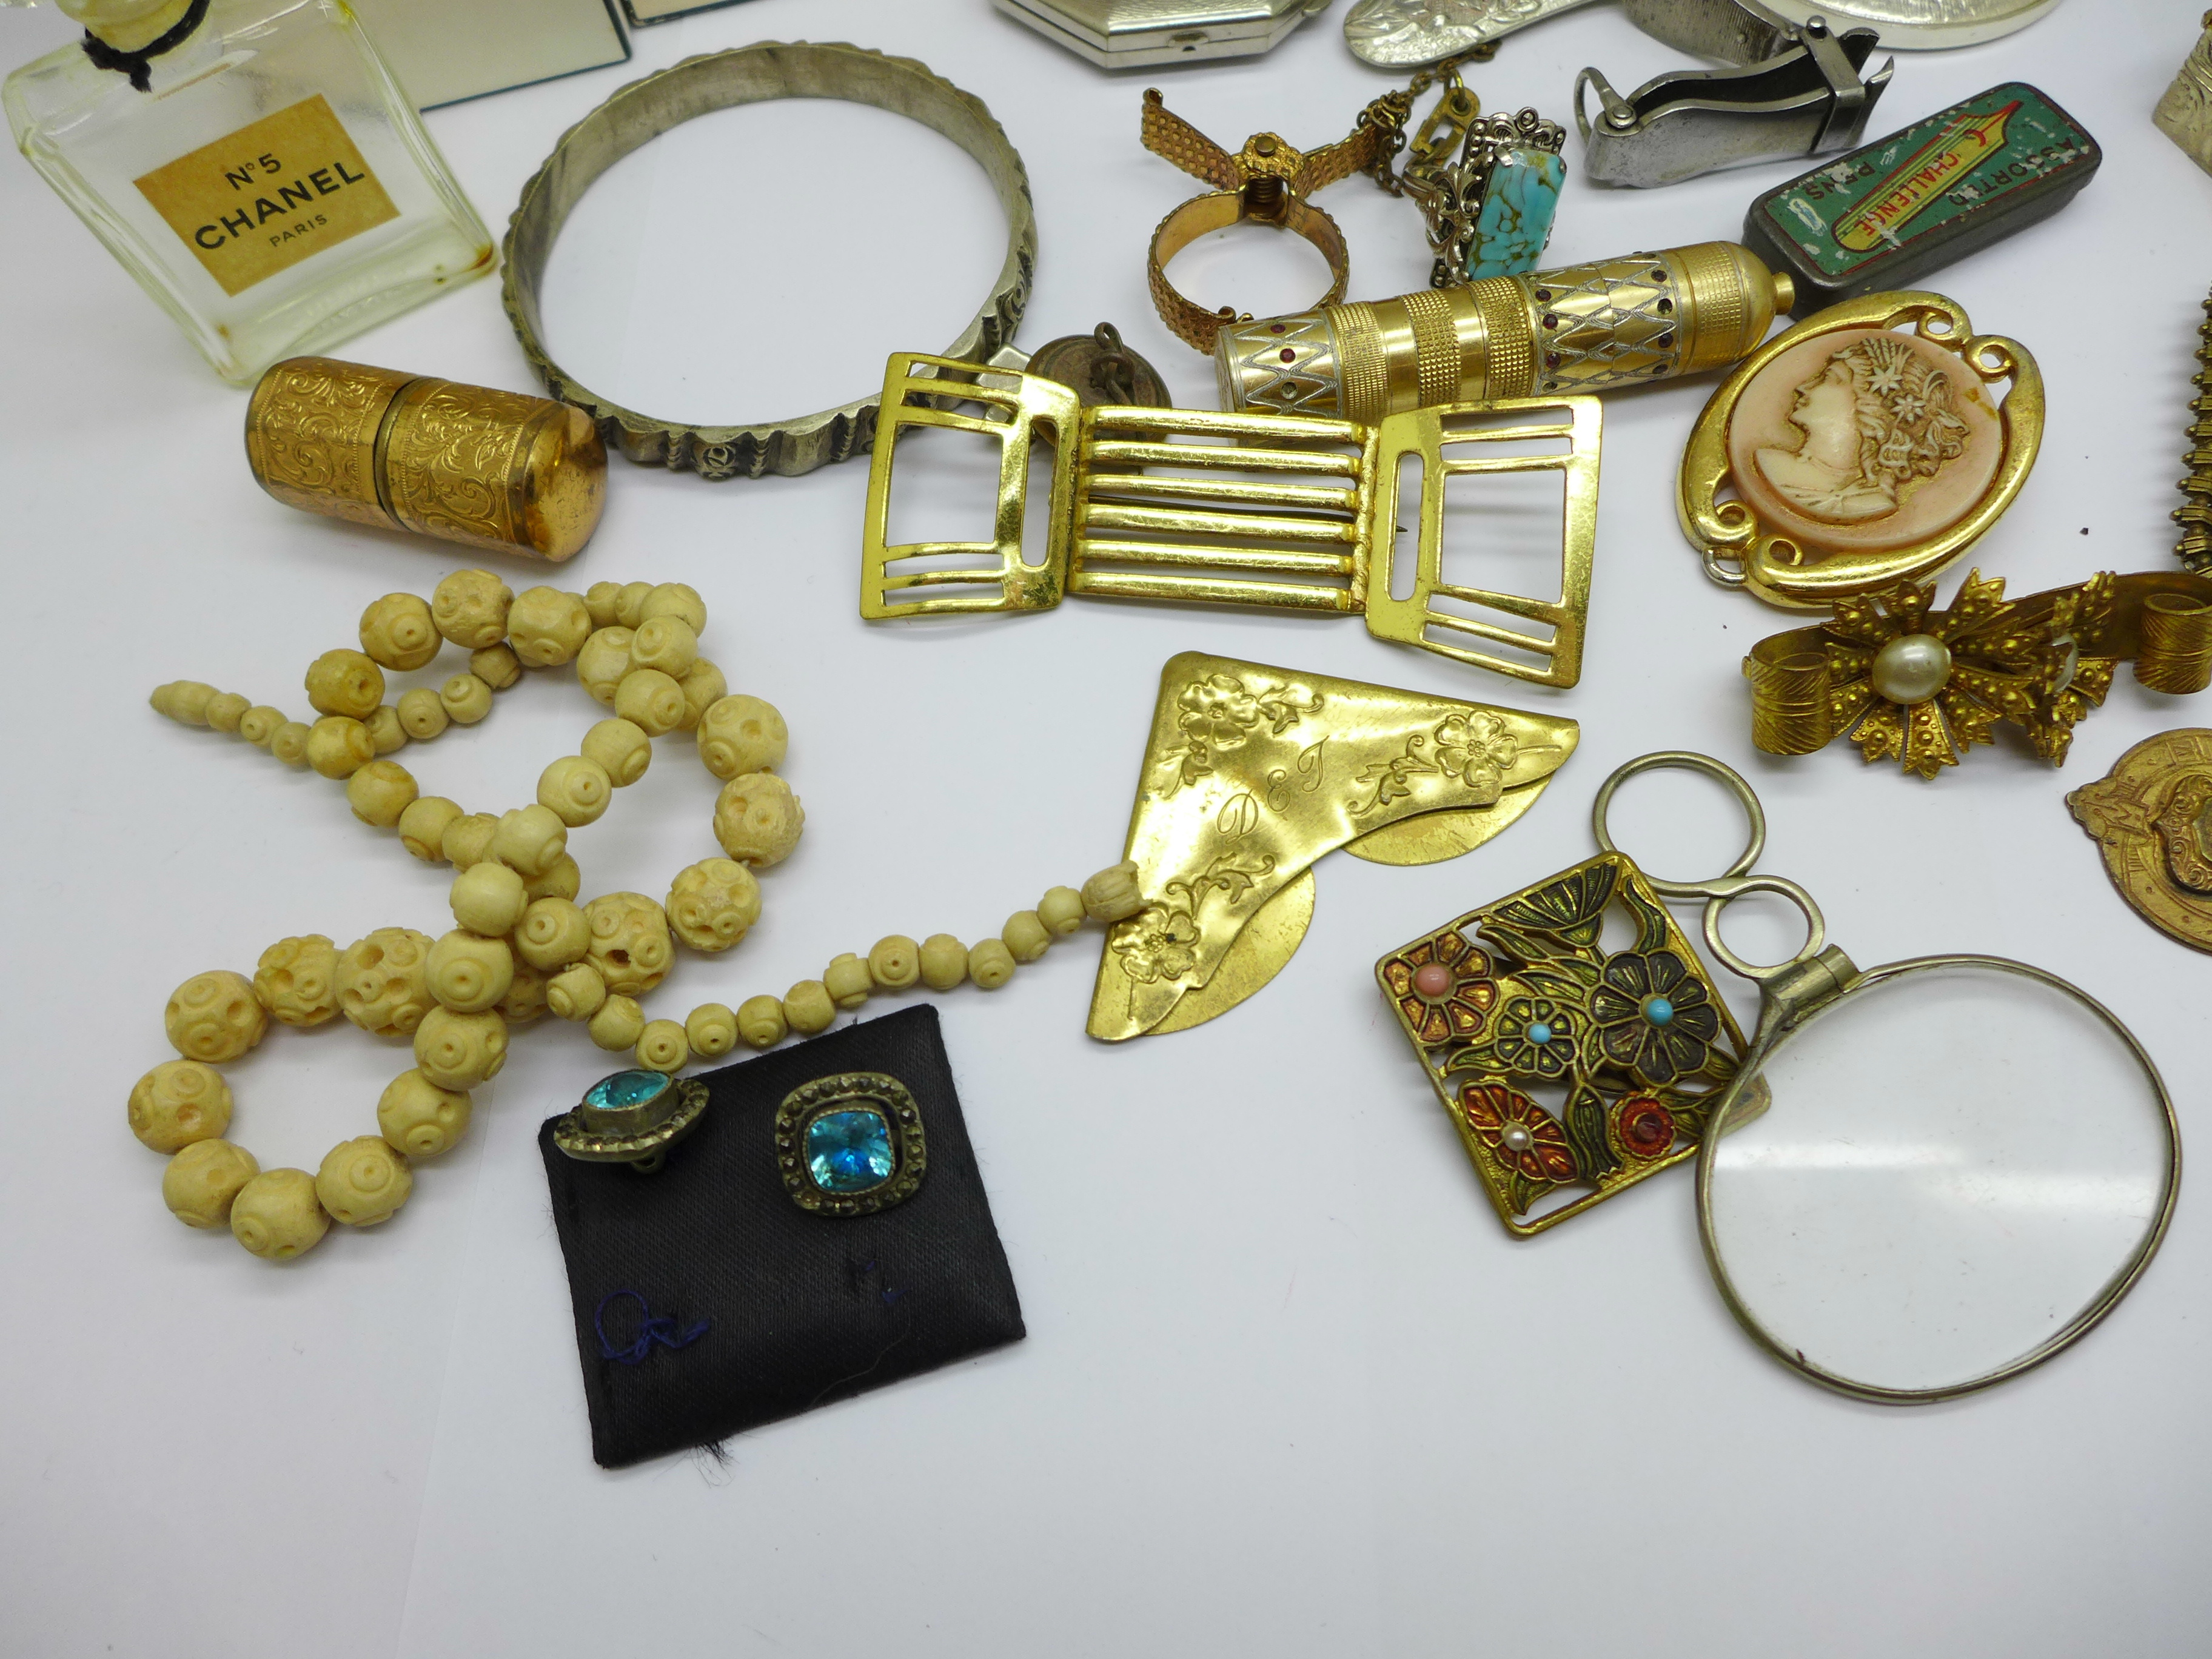 Vintage jewellery, a compact, a mirror, etc. - Image 4 of 4